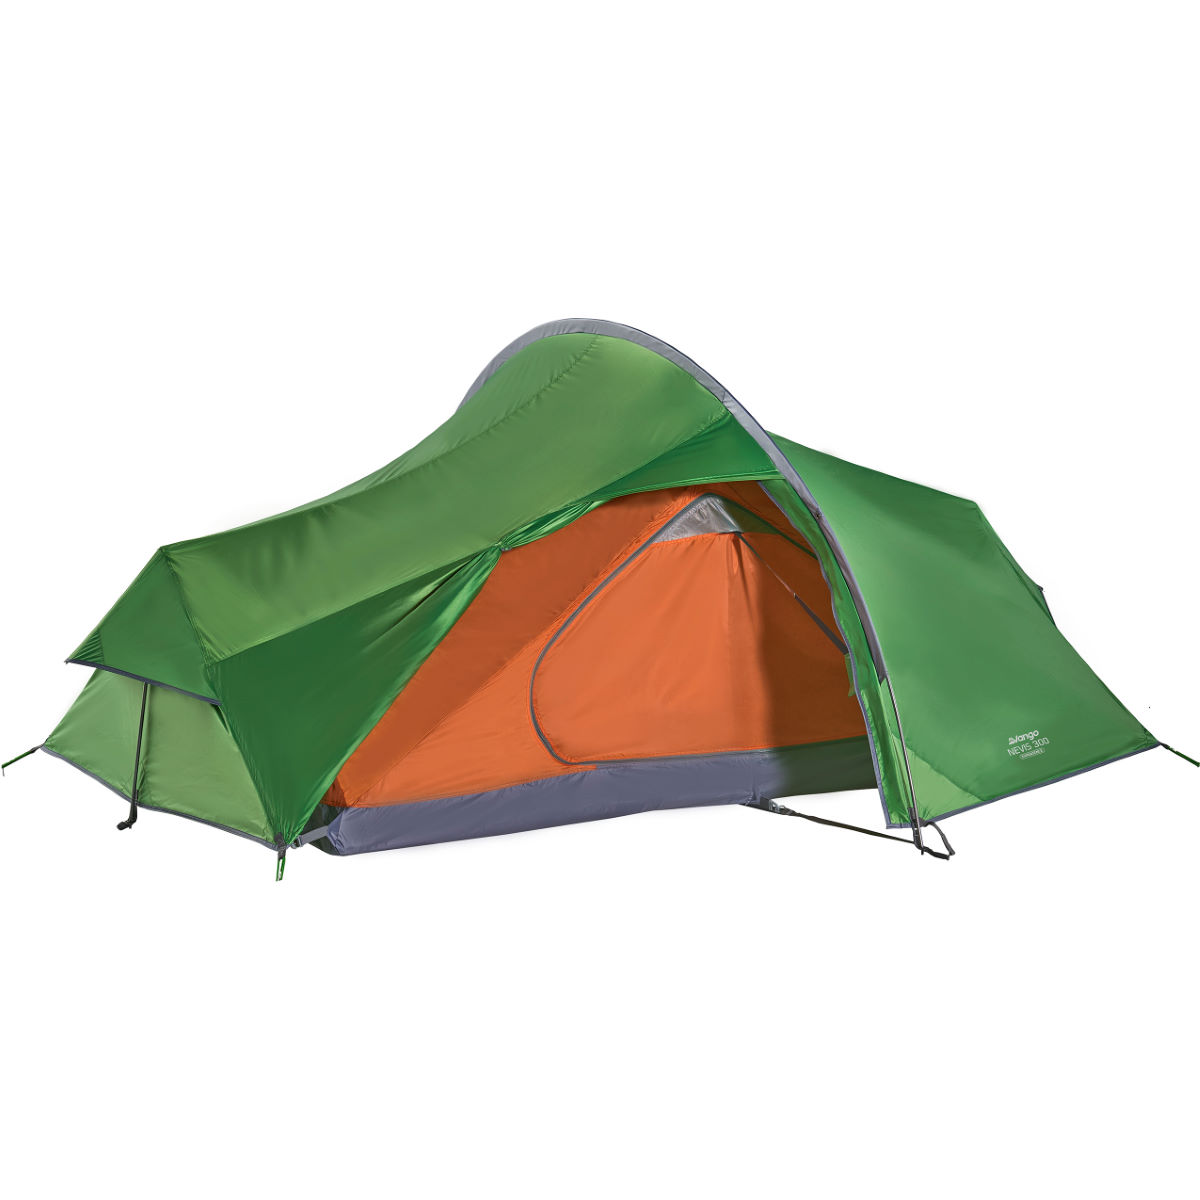 Vango Vango Nevis 300 Three Person Tent   Tents